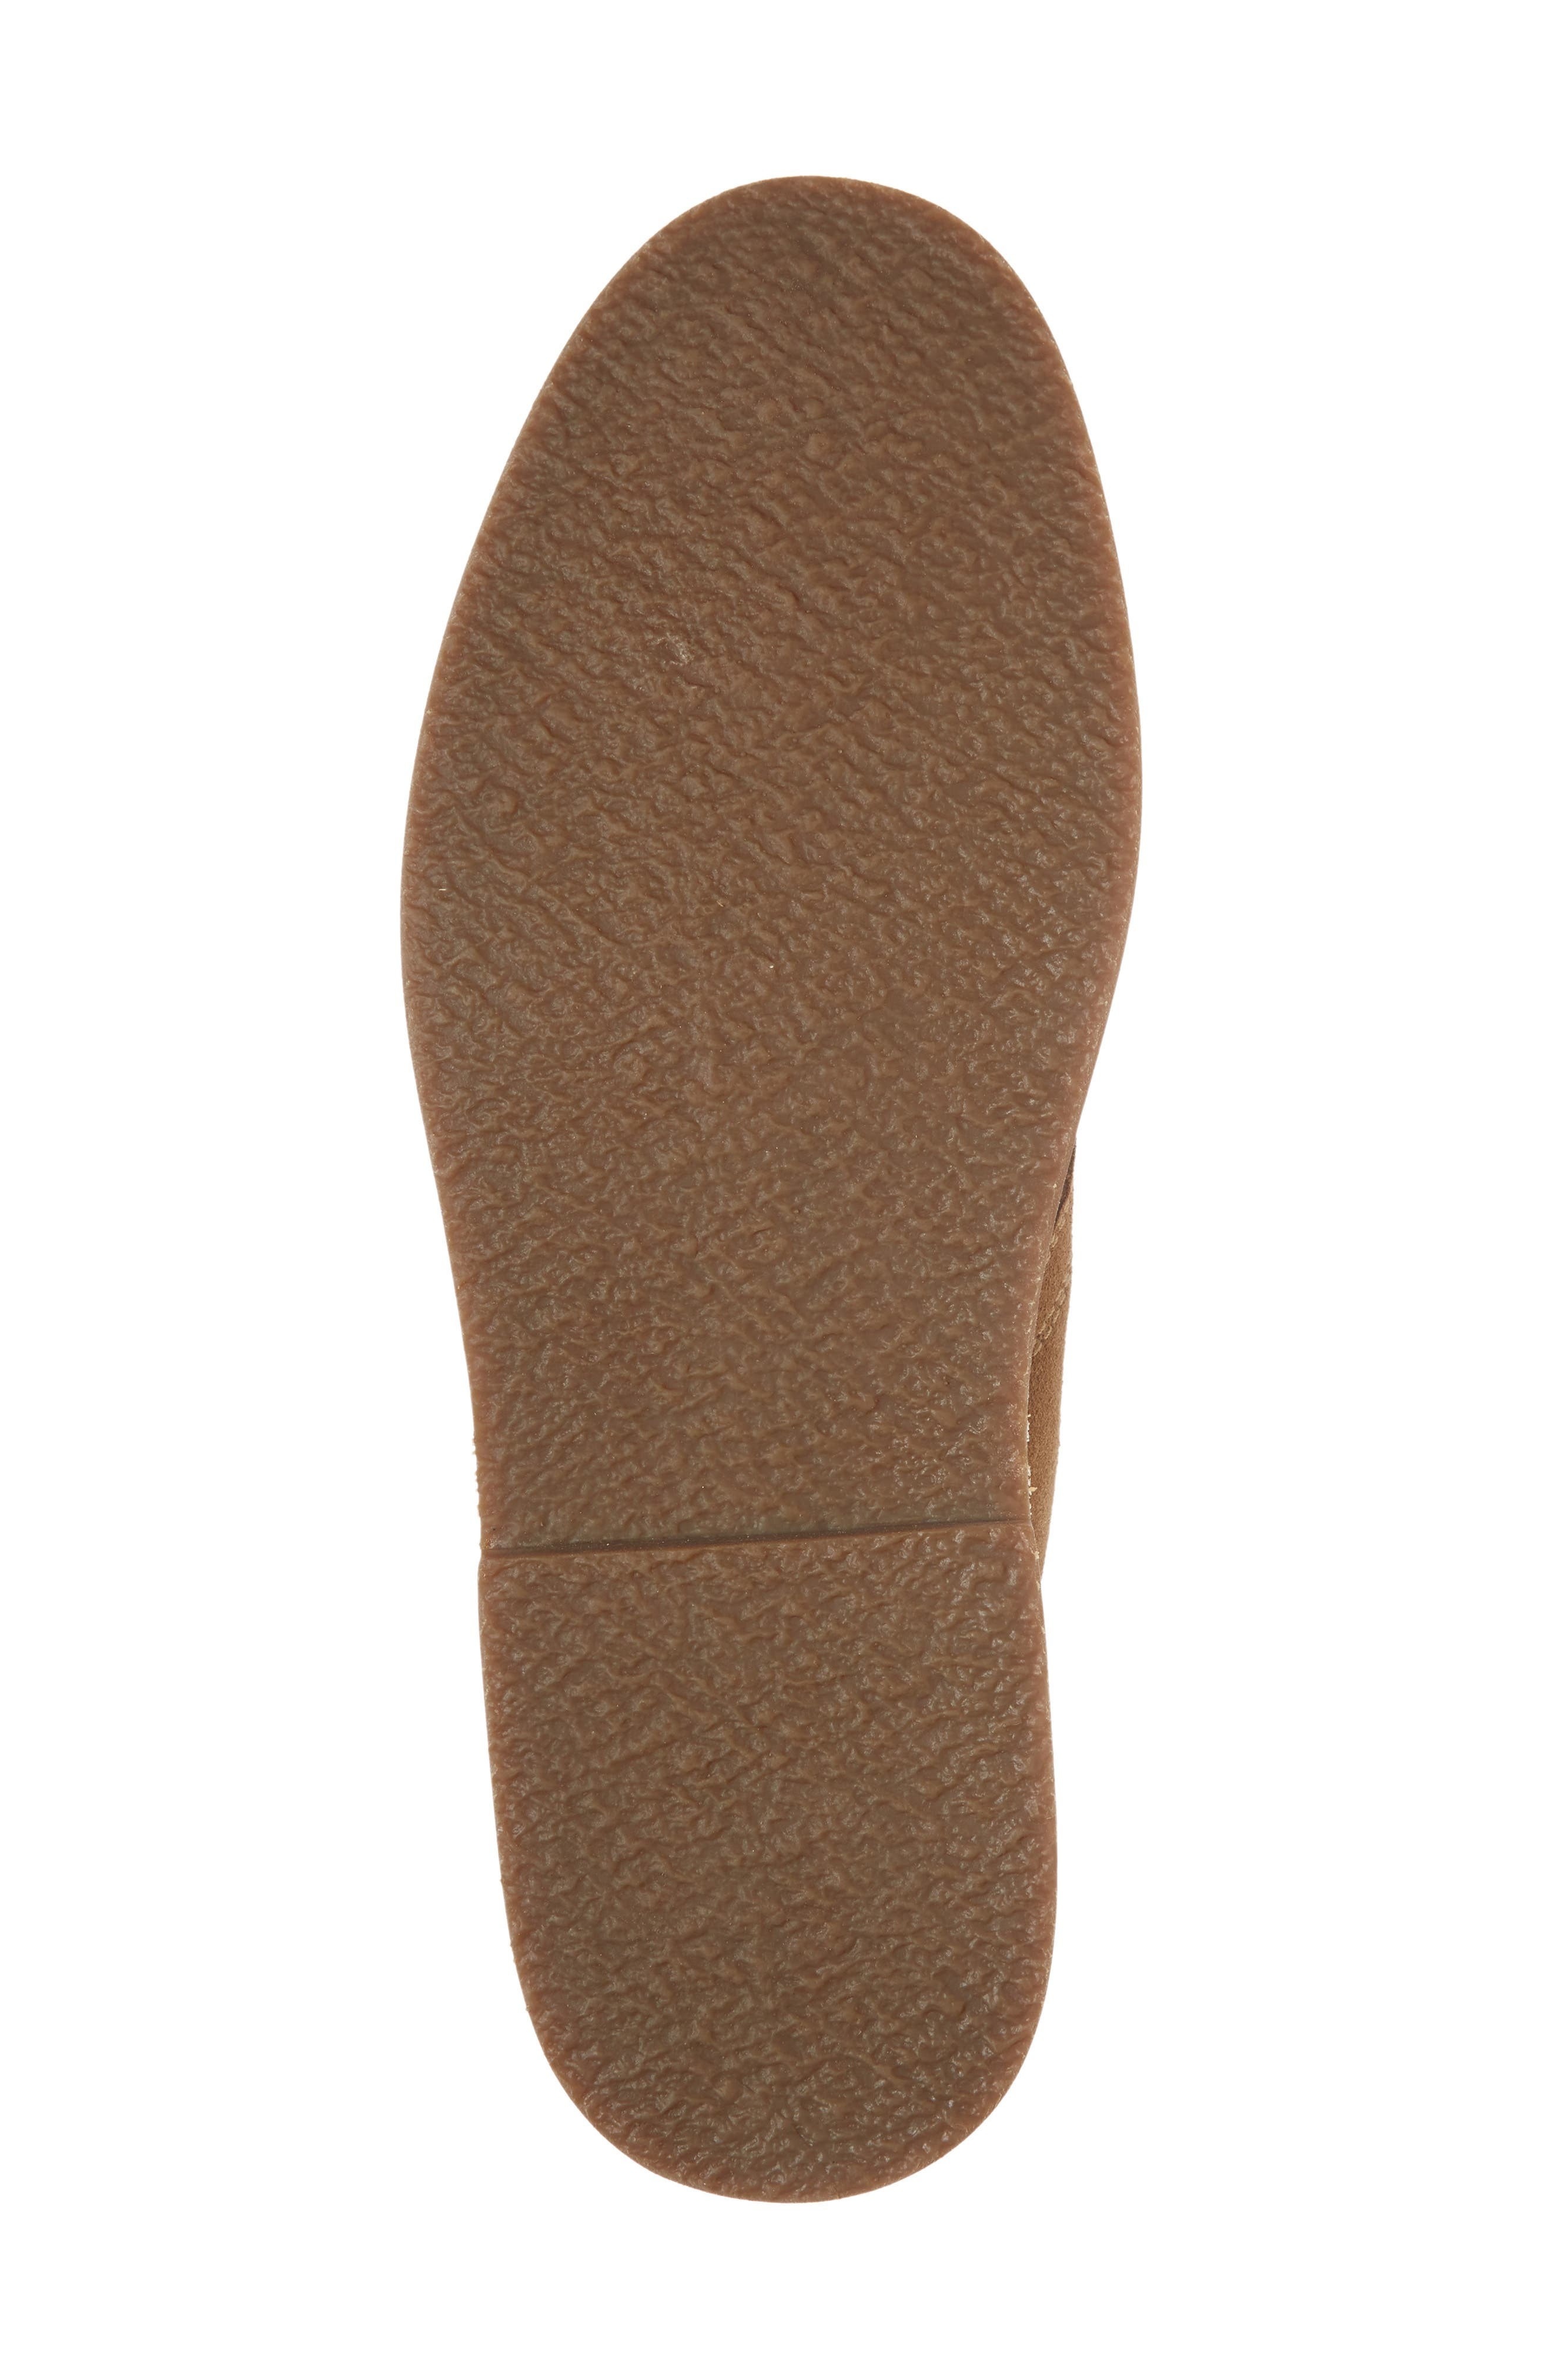 Tempe Chukka Boot,                             Alternate thumbnail 6, color,                             SAND SUEDE